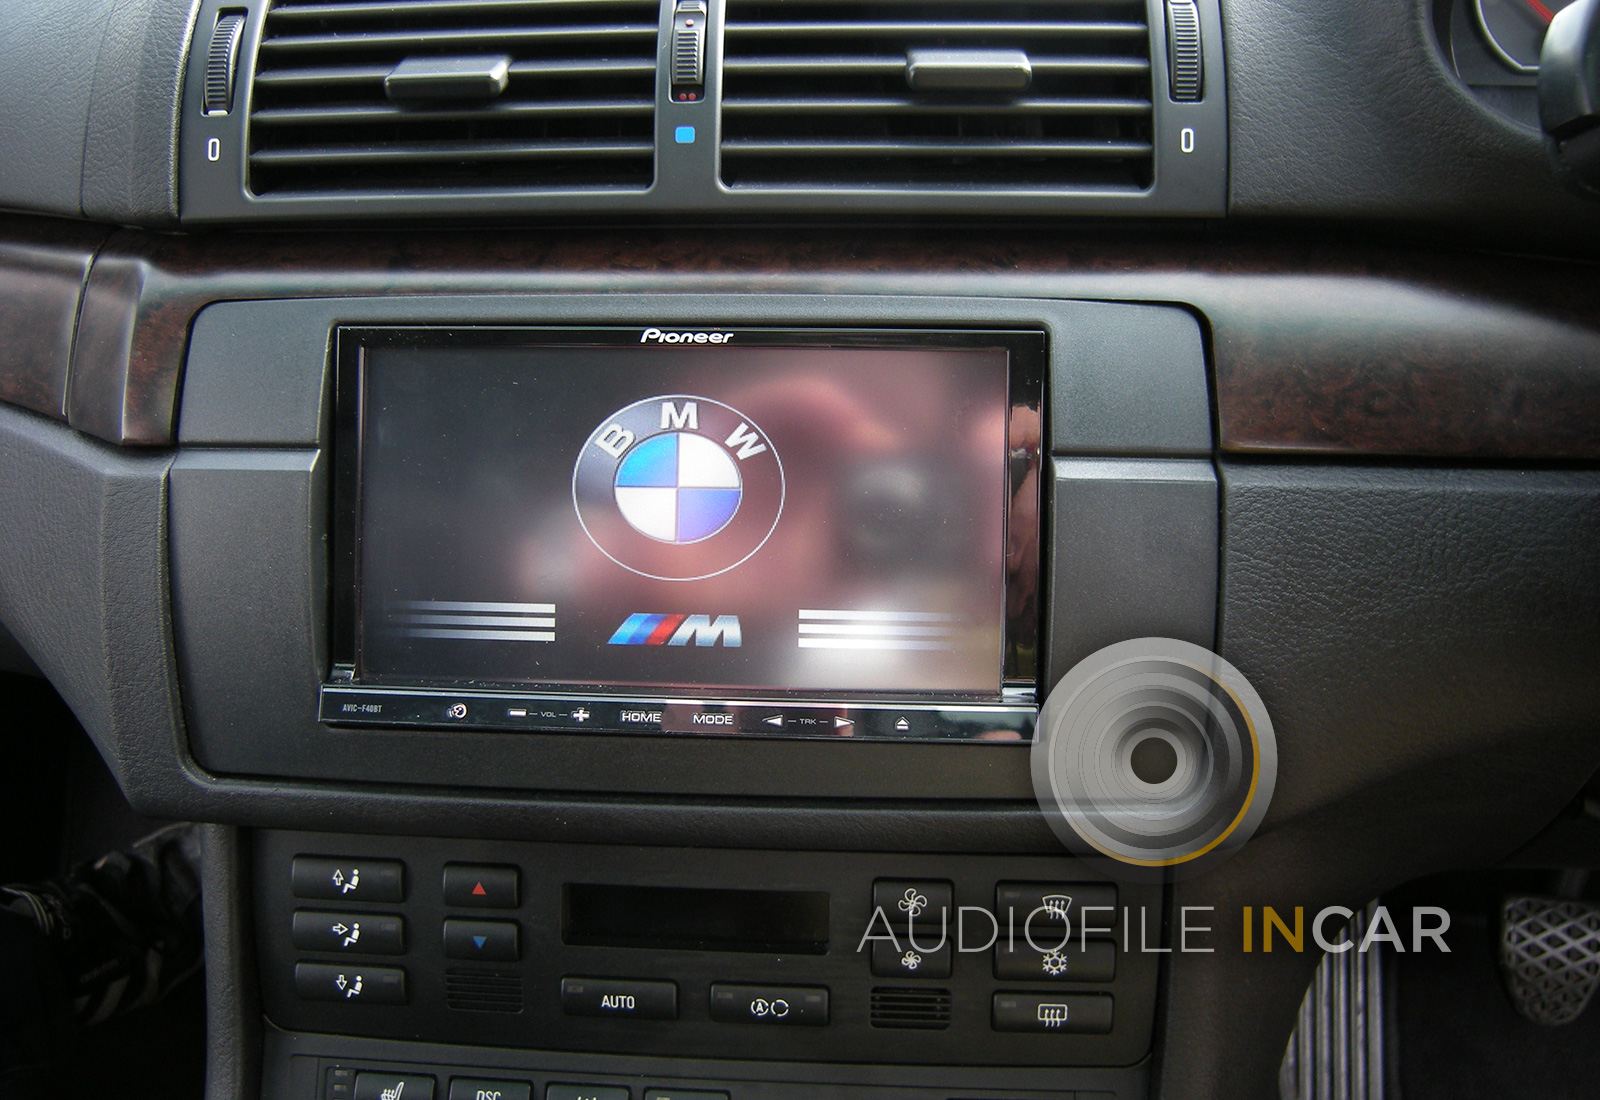 Similiar BMW M3 Custom Stereo Keywords